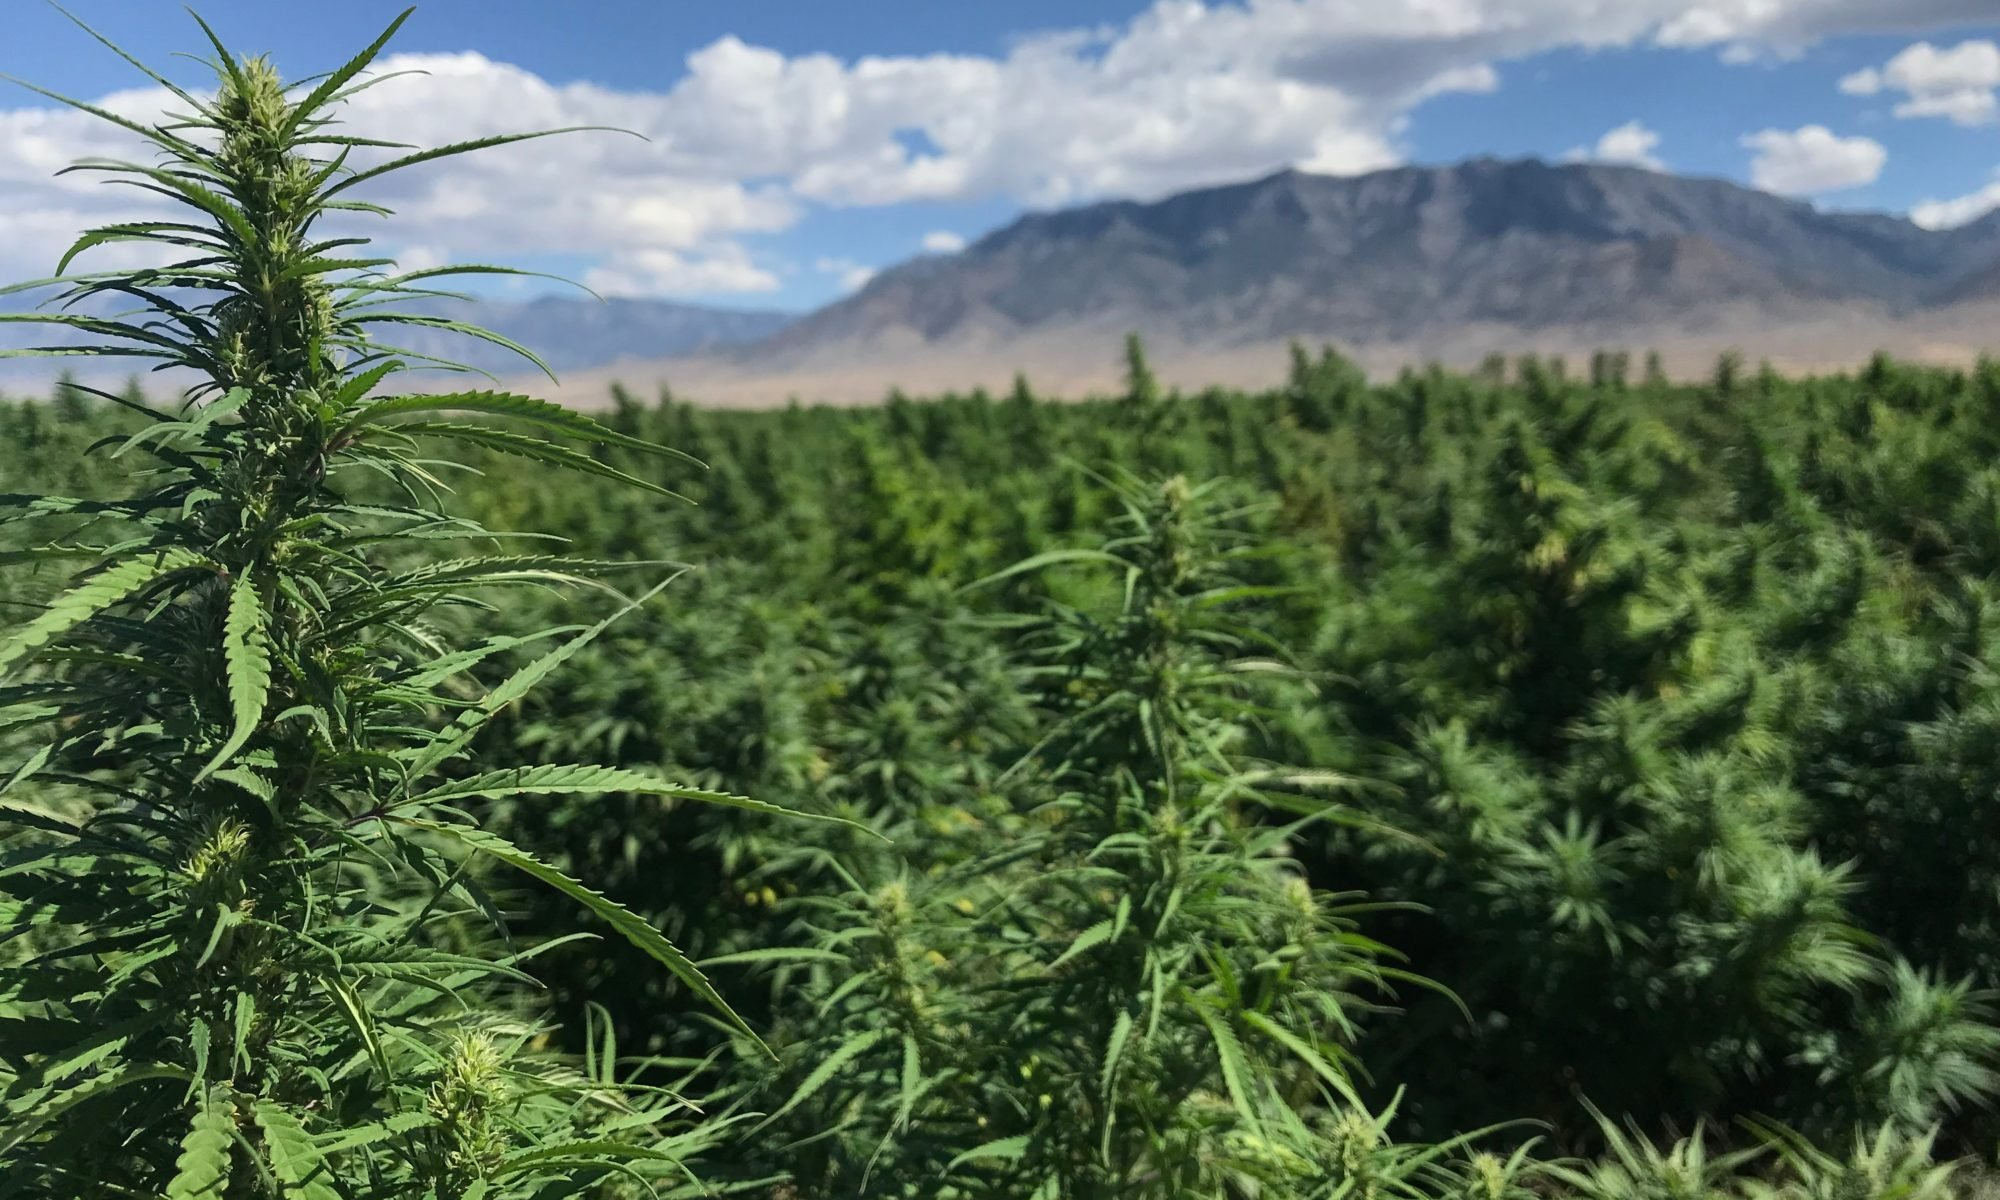 Nevada growers see new opportunity for hemp with the Farm Bill's passage,